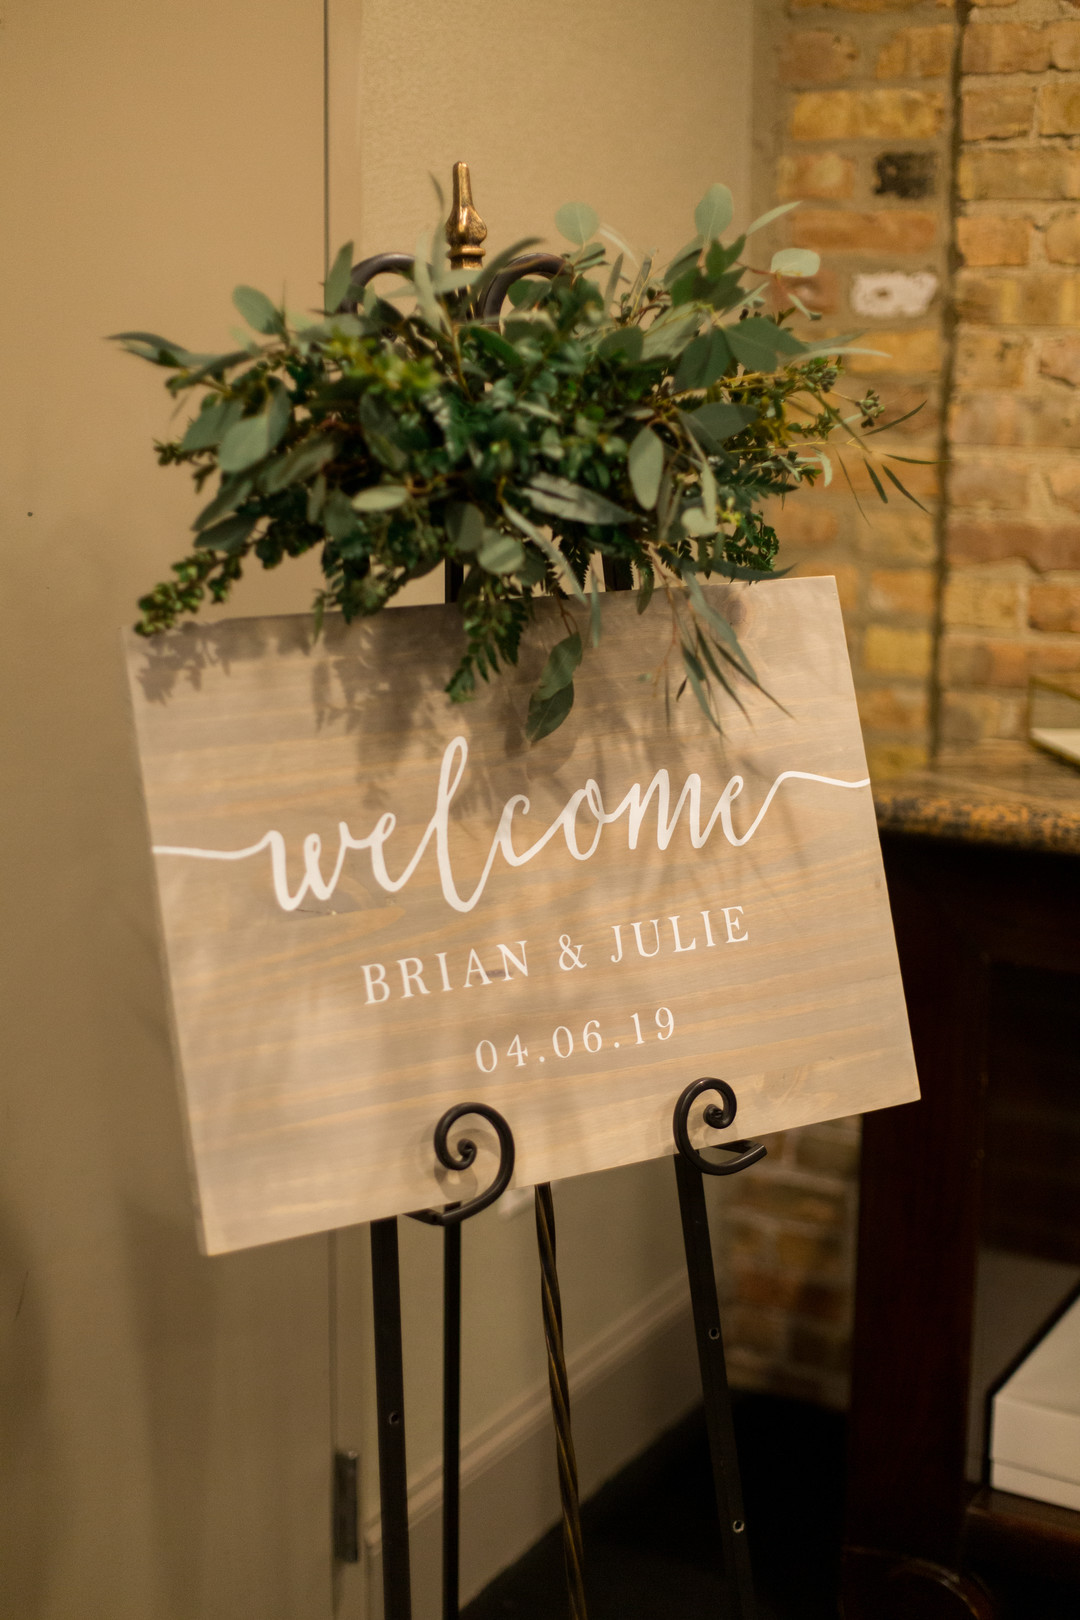 Wedding welcome sign: Spring wedding inspiration captured by Nicole Morisco Photography. Find more spring wedding ideas at CHItheeWED.com!